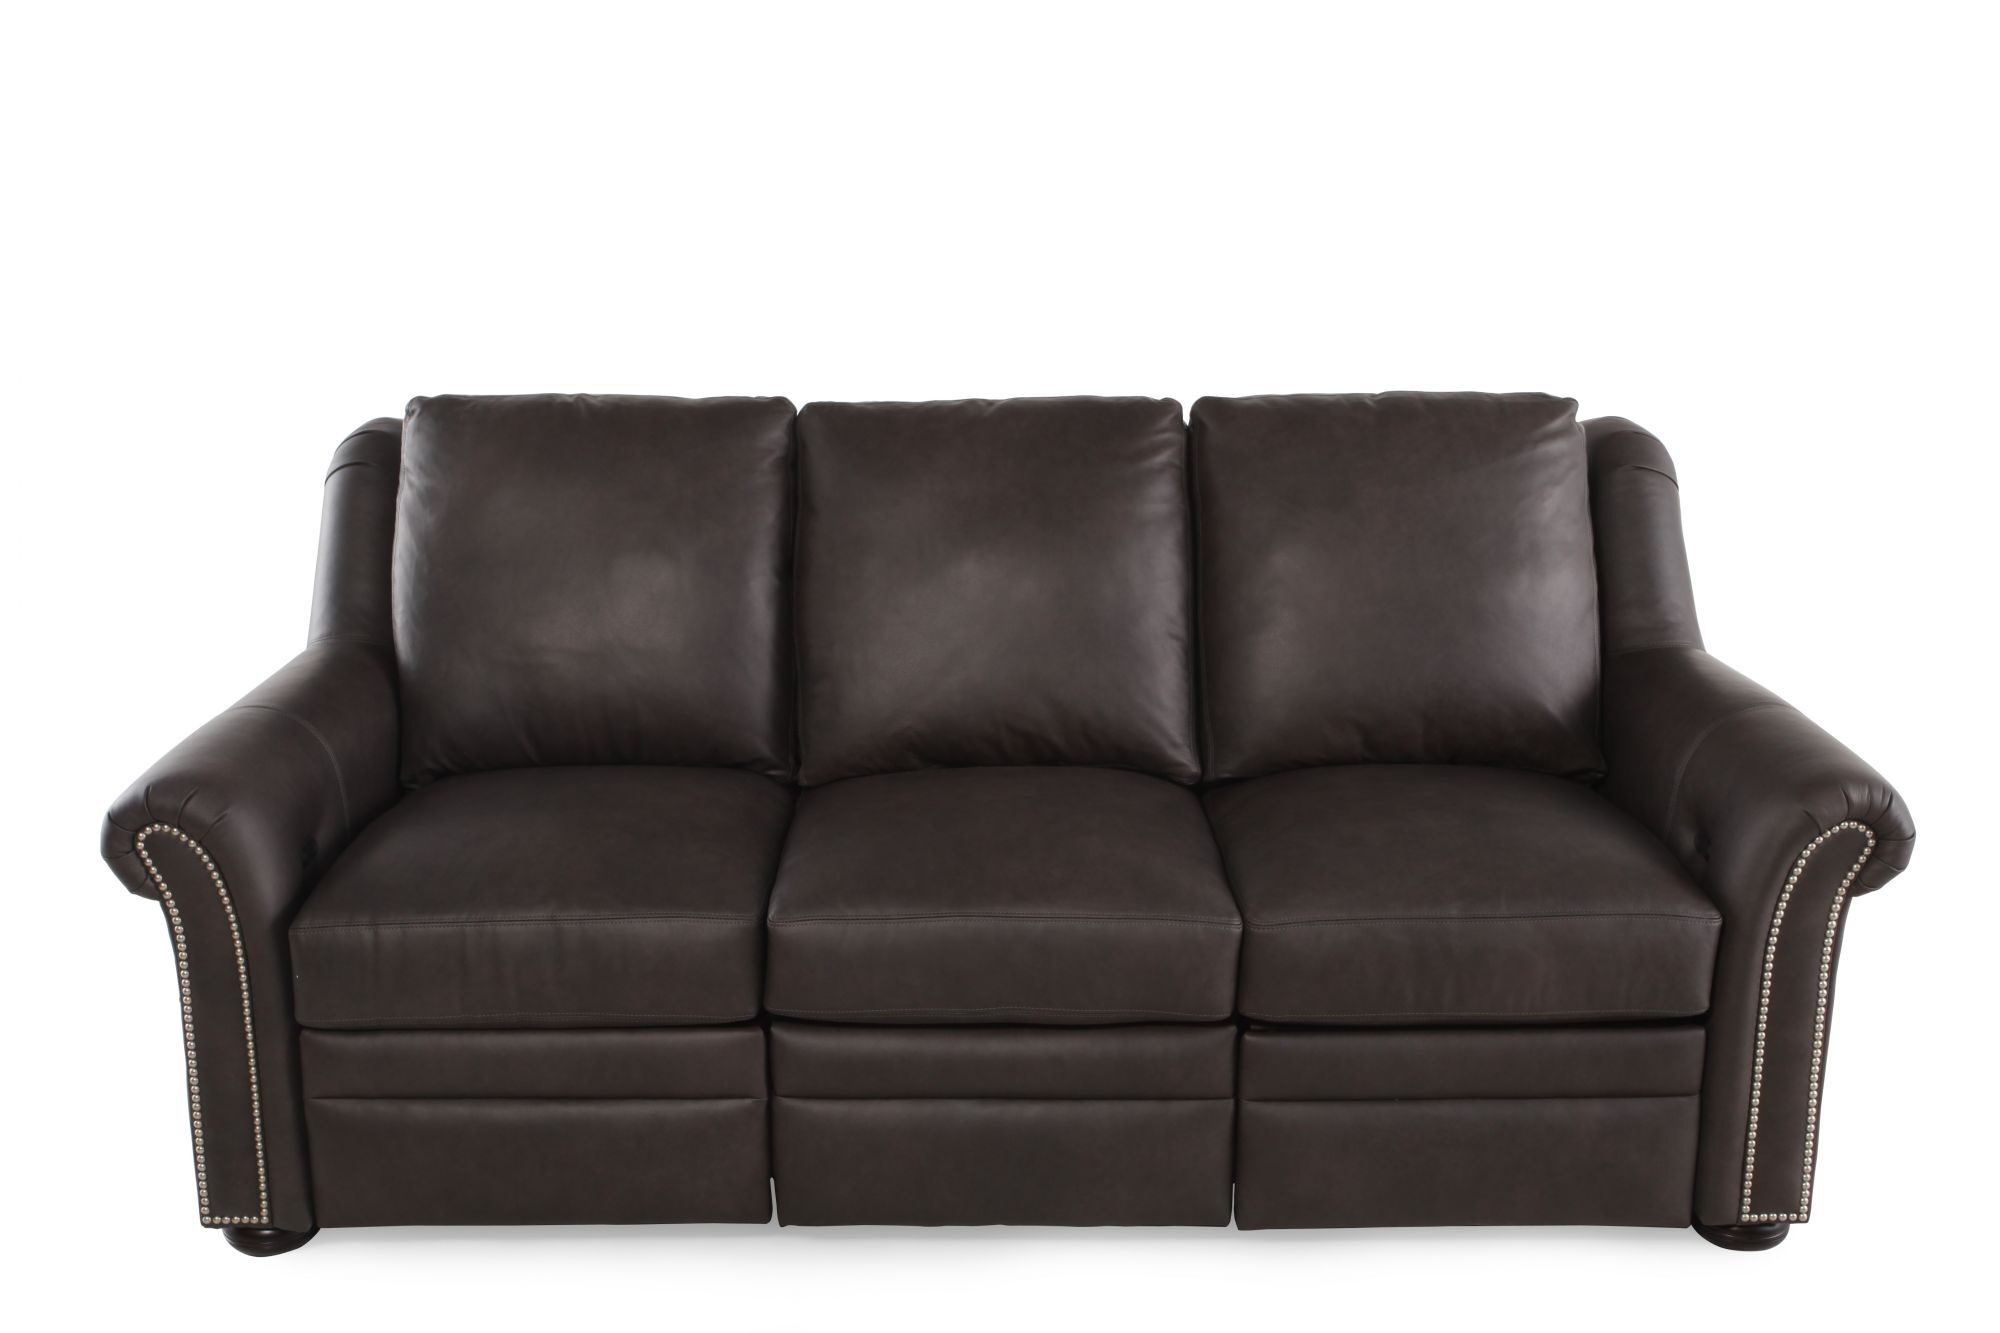 nailhead recliner sofa unique sofas australia accented leather reclining in brown mathis